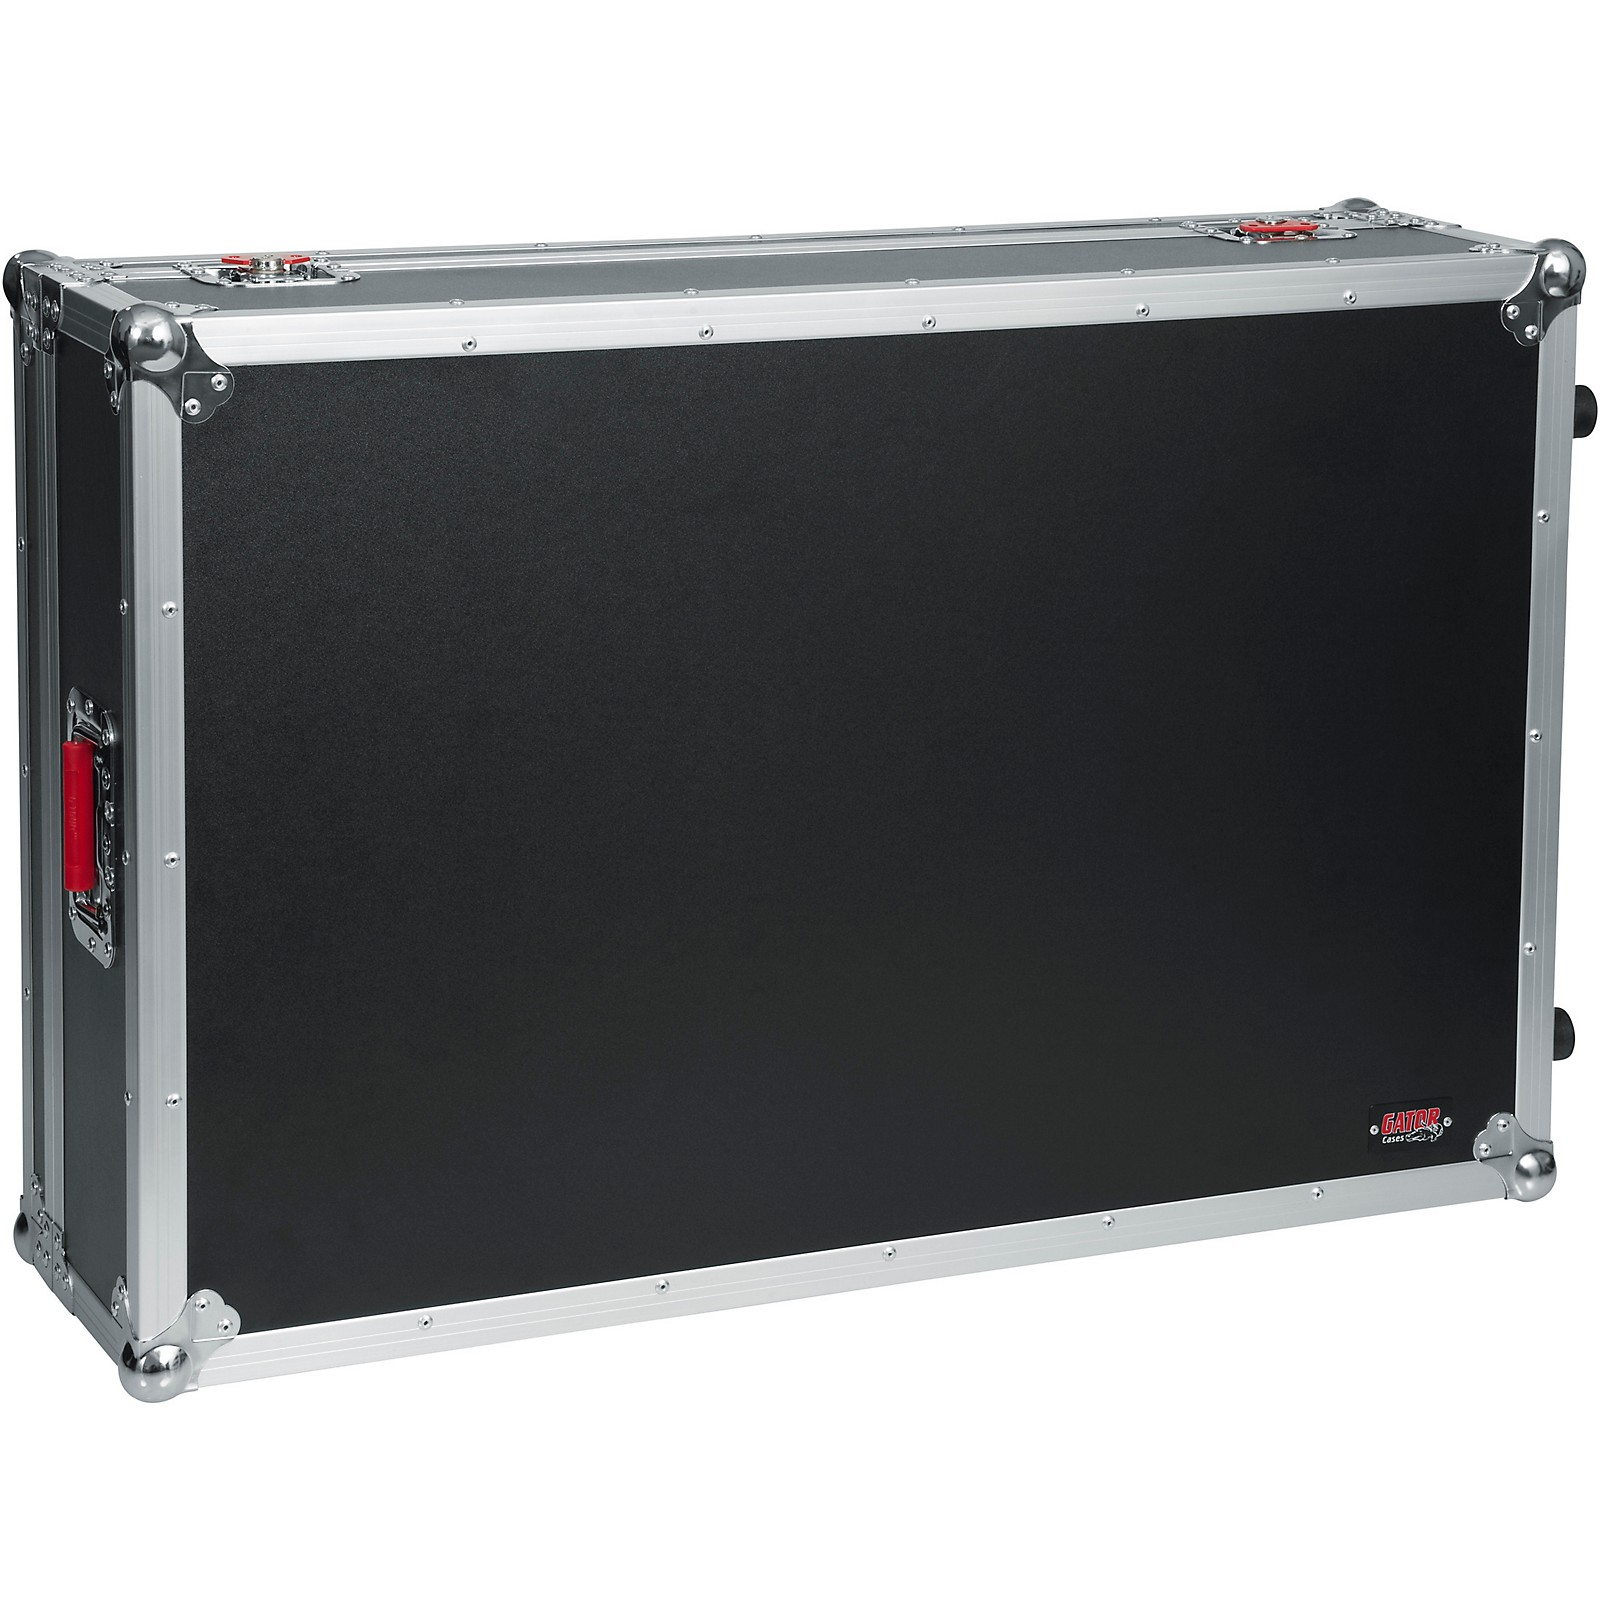 Gator G-TOURX32NDH ATA Road Case for Behringer X32 Mixer